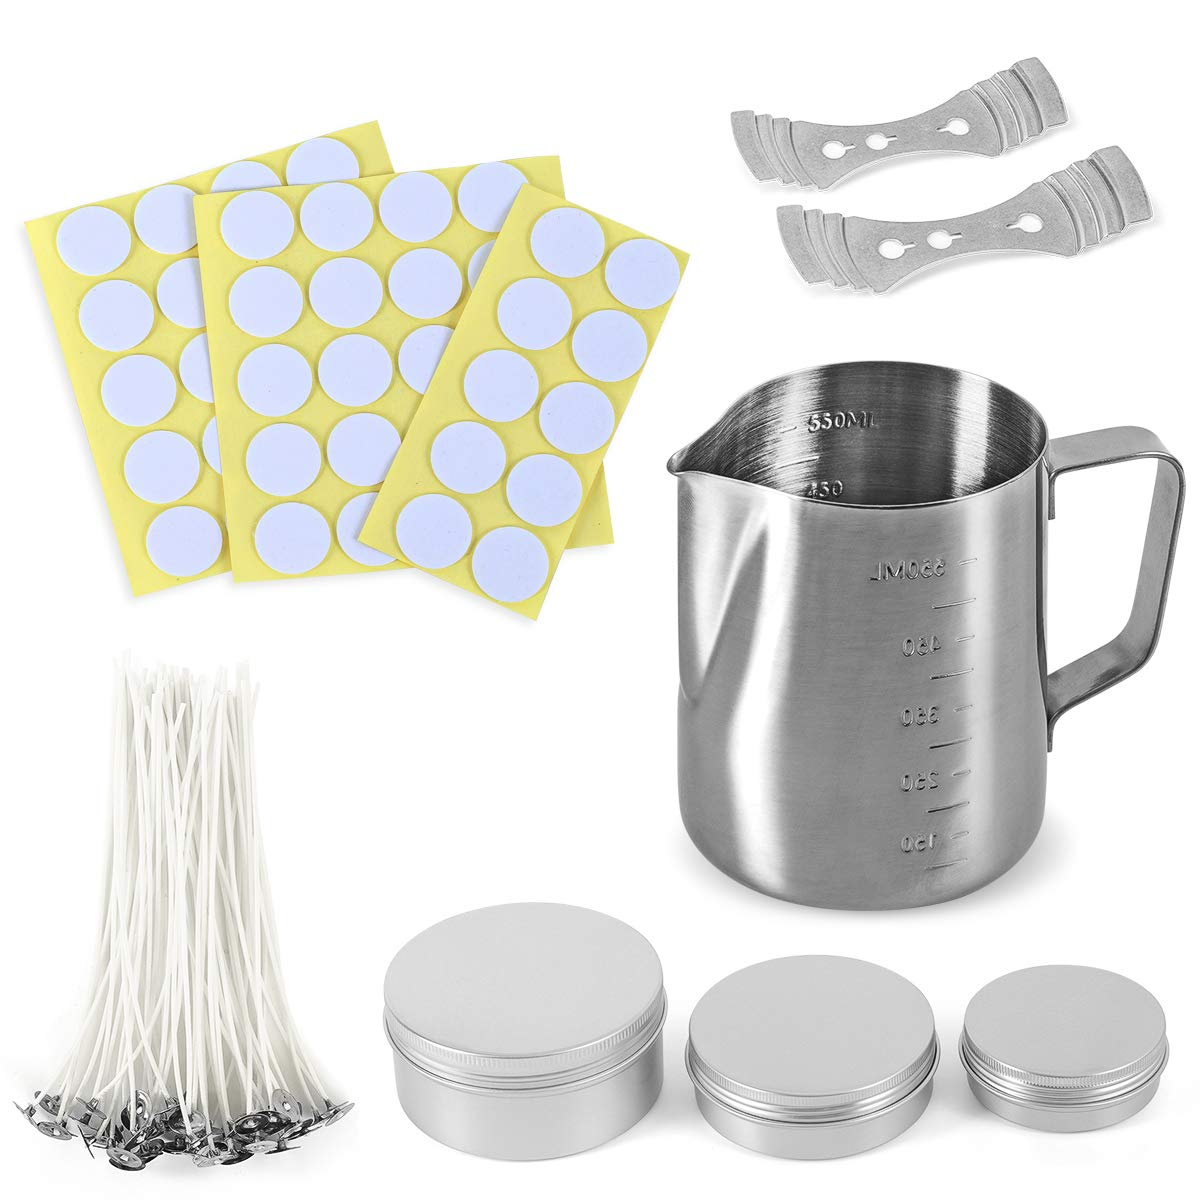 Candle Making Kit - Includes 1pc Candle Make Pouring Pot, 3pcs Candle Tins, 50pcs Candle Wicks, 50pcs Wicks Sticker, 2pcs 3-Hole Wicks Holder for Candles Craft DIY